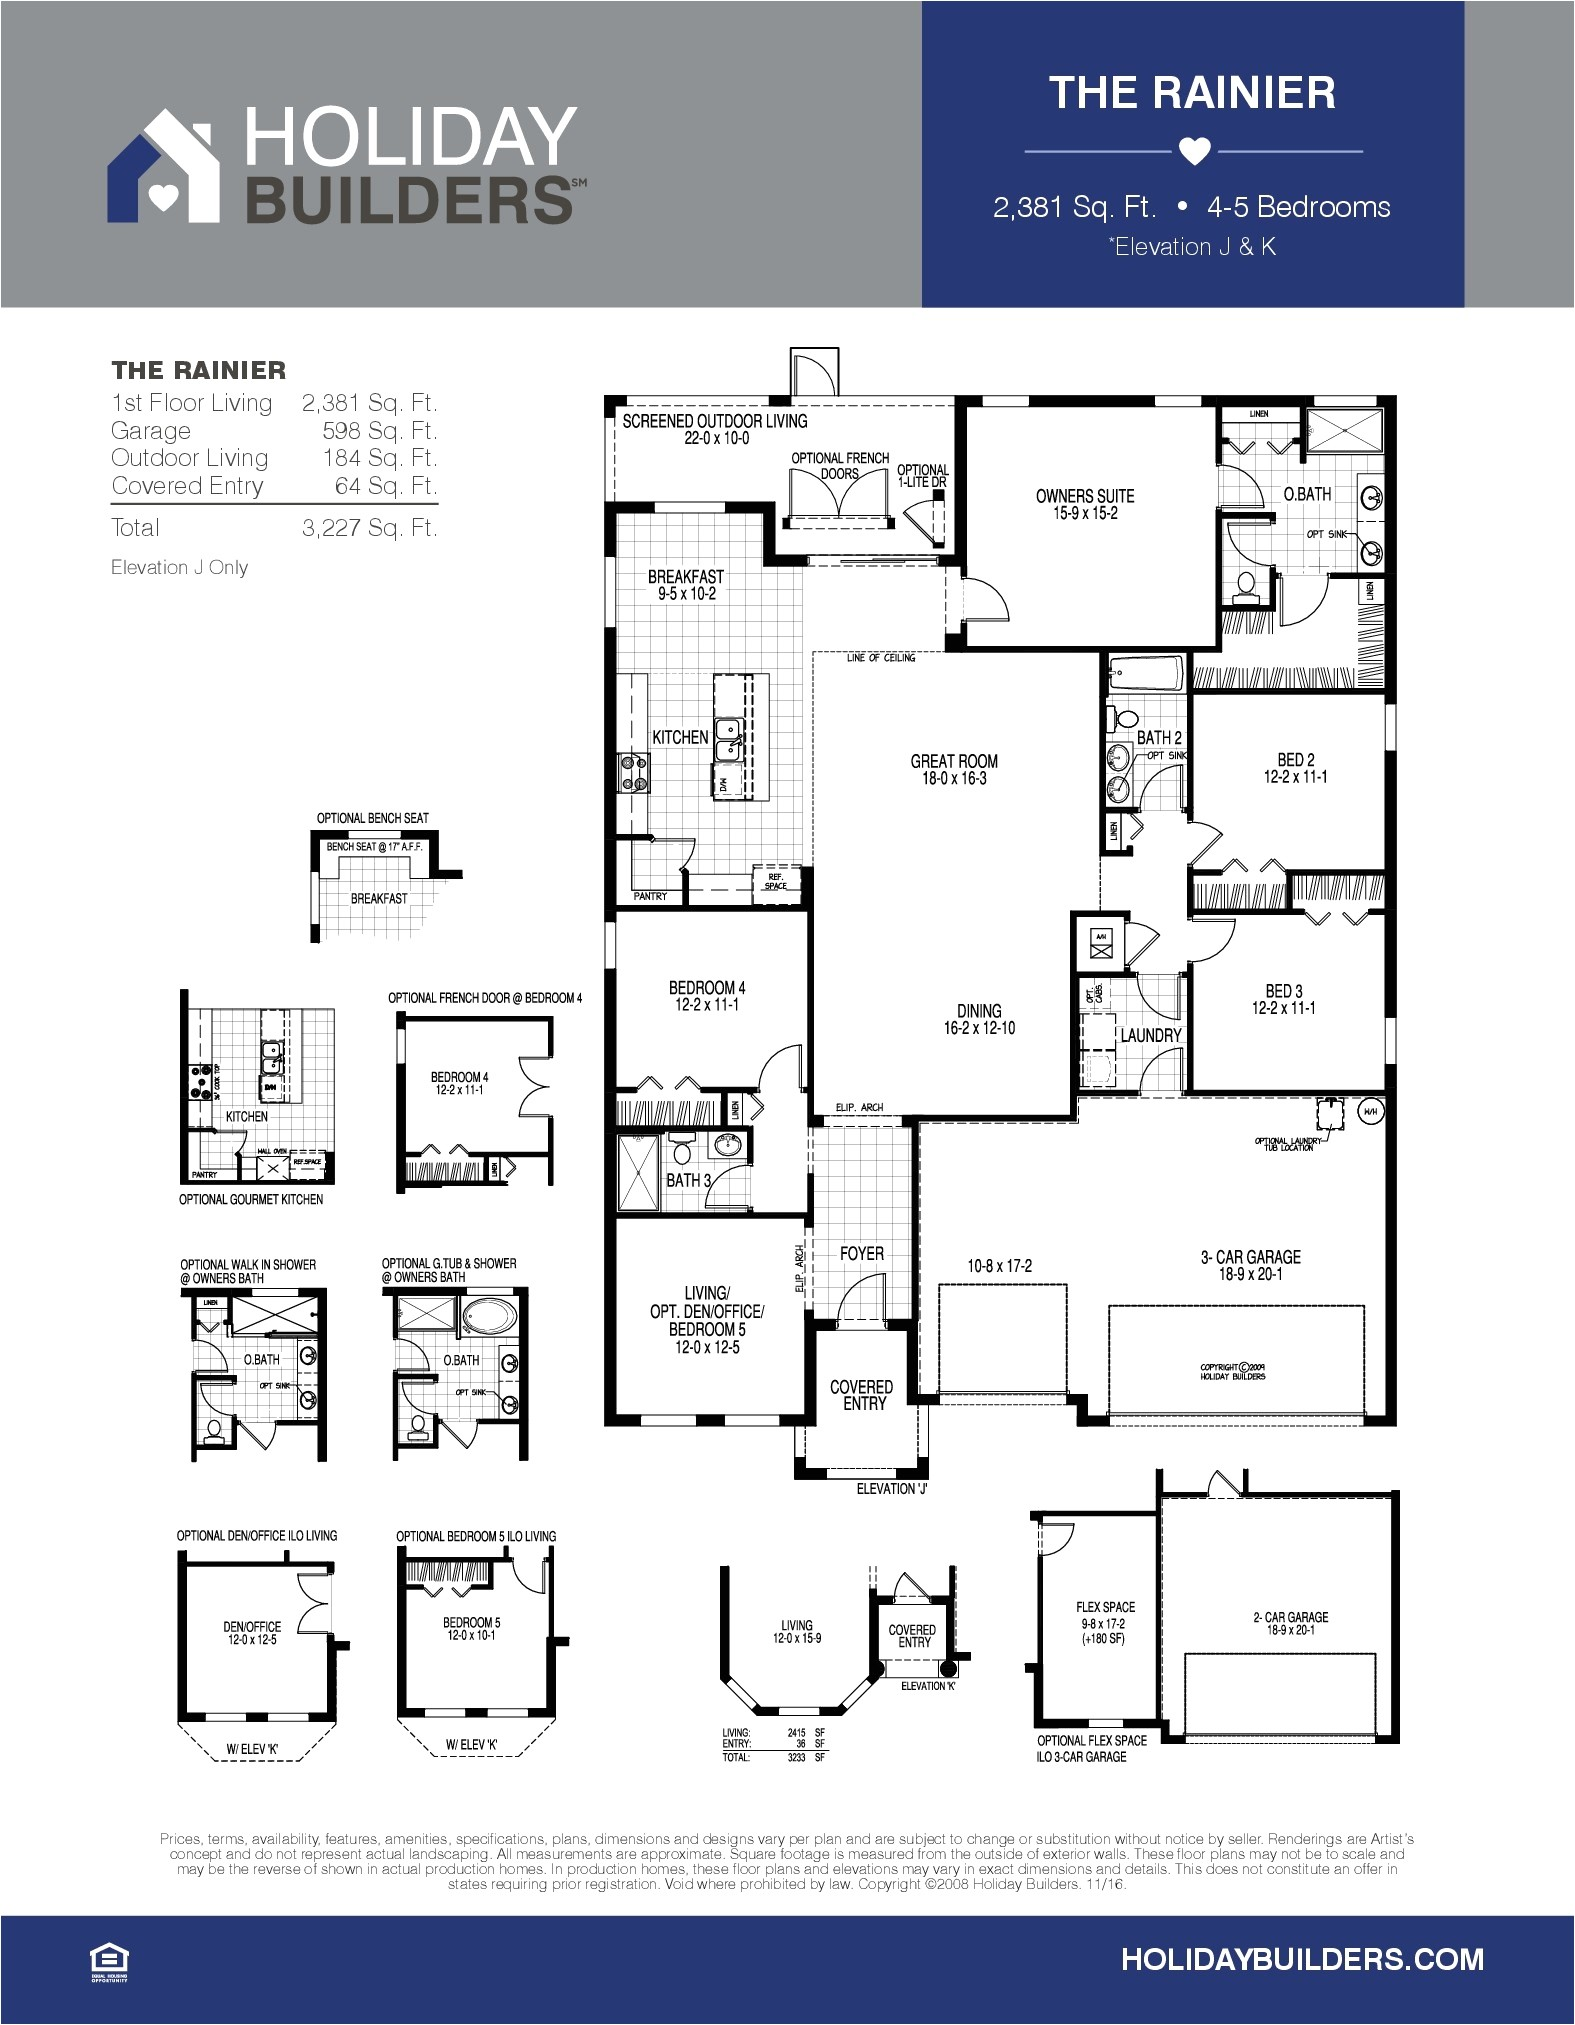 holiday builders floor plans inspirational best holiday builders floor plans contemporary flooring amp area